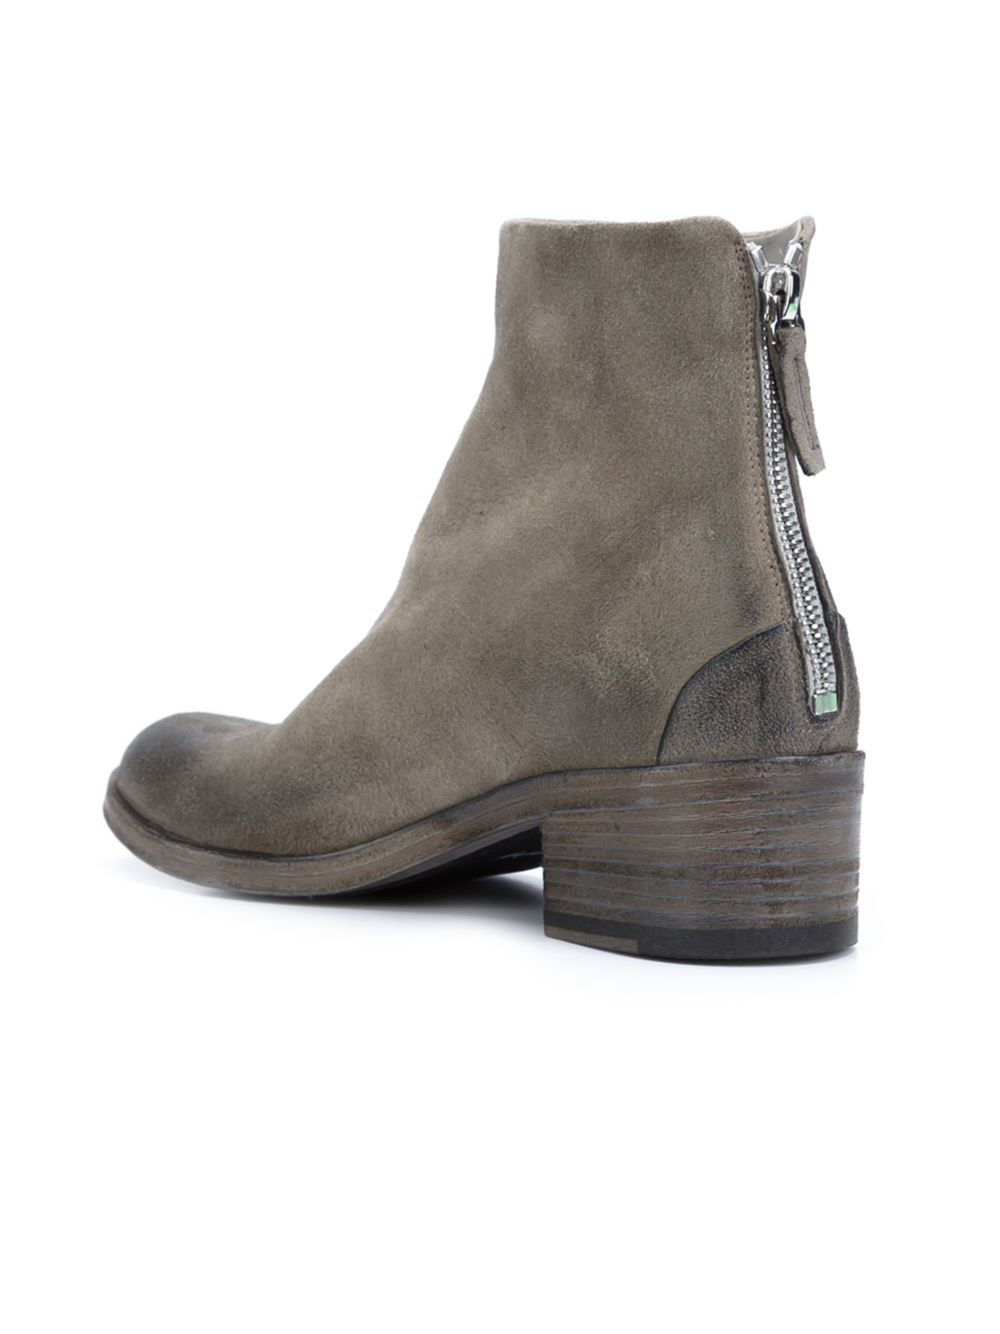 Marsèll Leather Rear Zip Ankle Boots in Grey (Grey)